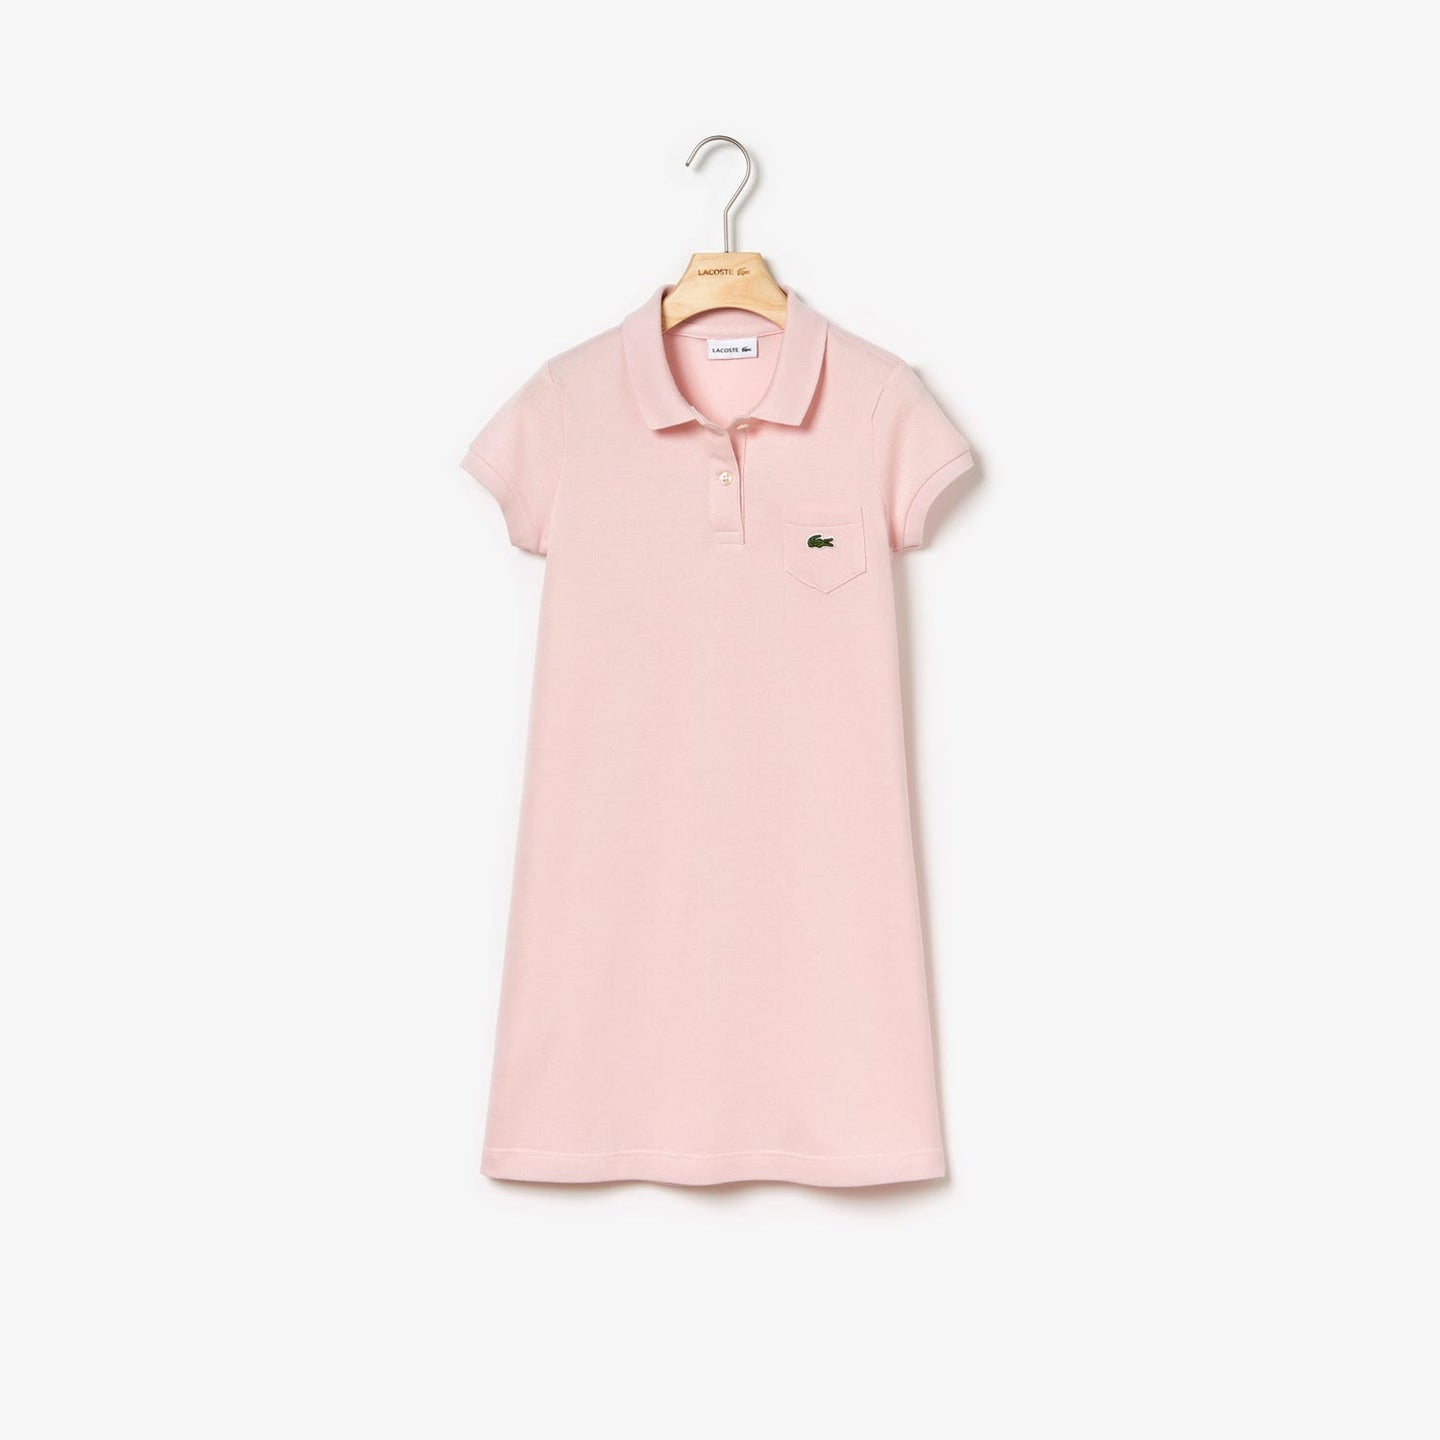 Lacoste Girl's Classic Pique Dress with Pocket EJ2816